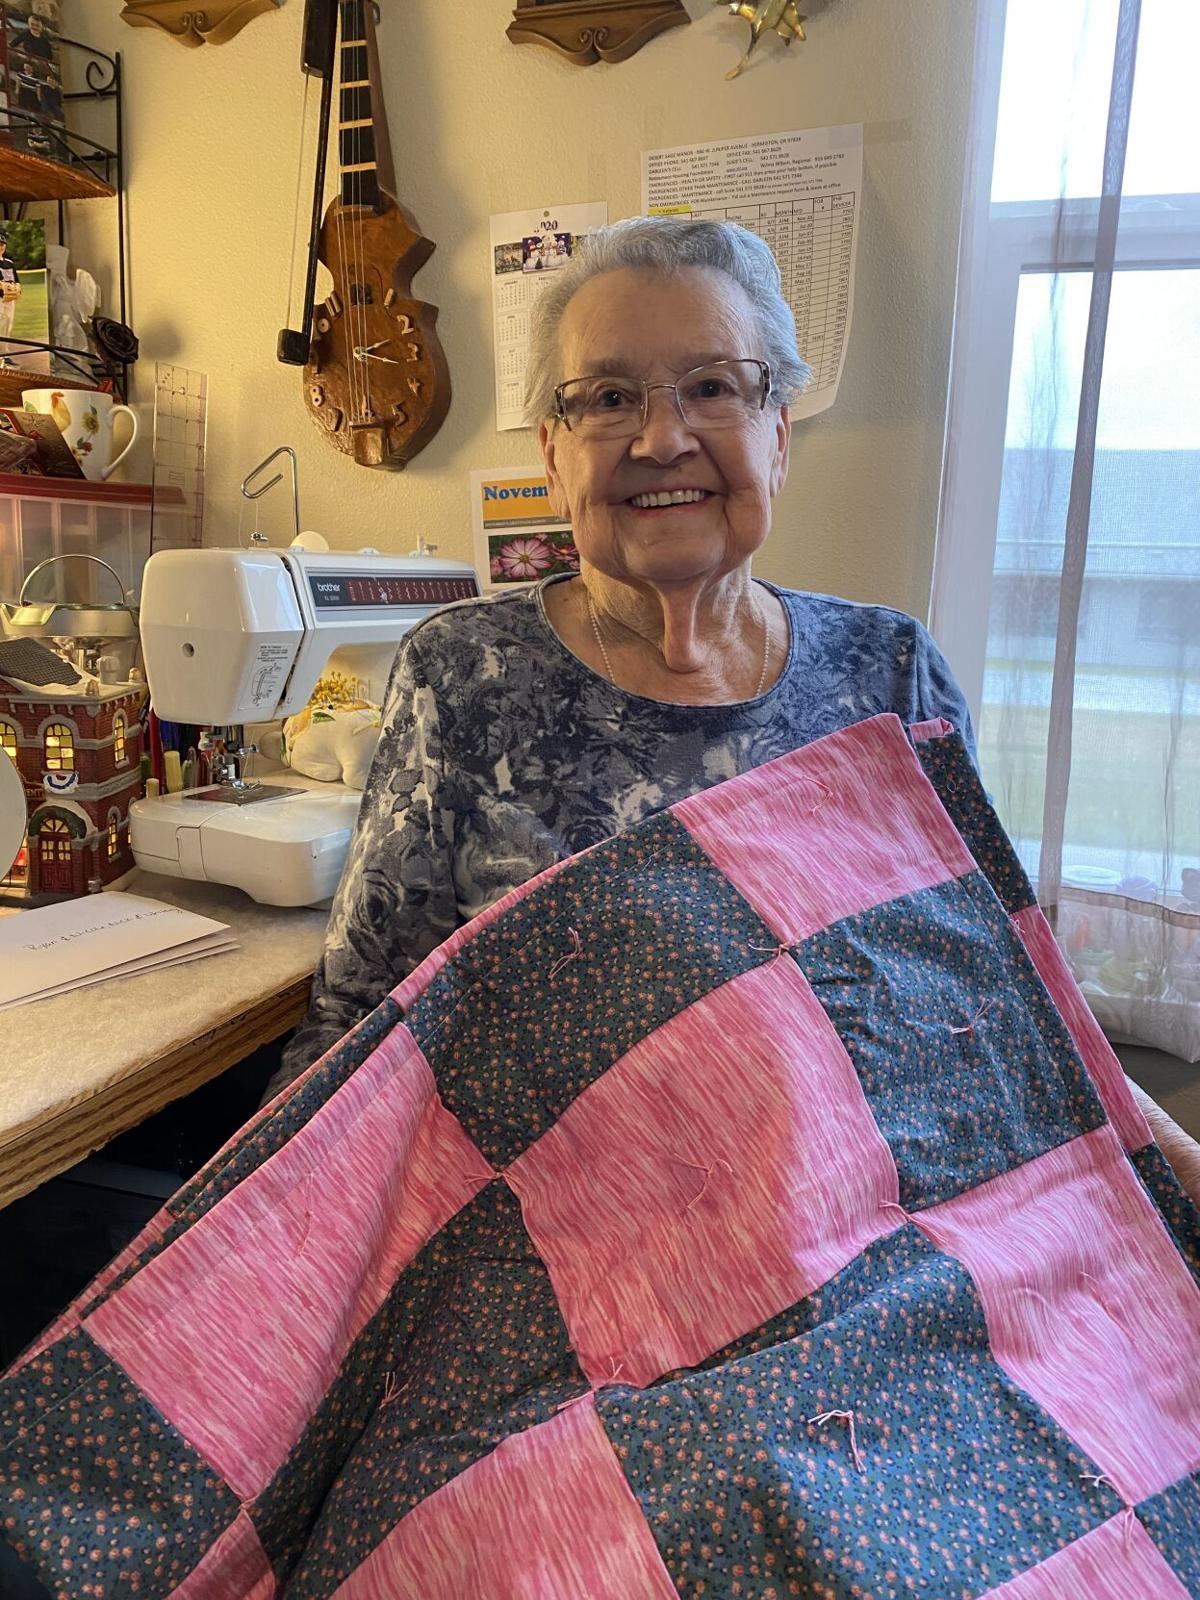 Hermiston woman, 90, turns out quilts for Christmas Express | Community |  hermistonherald.com